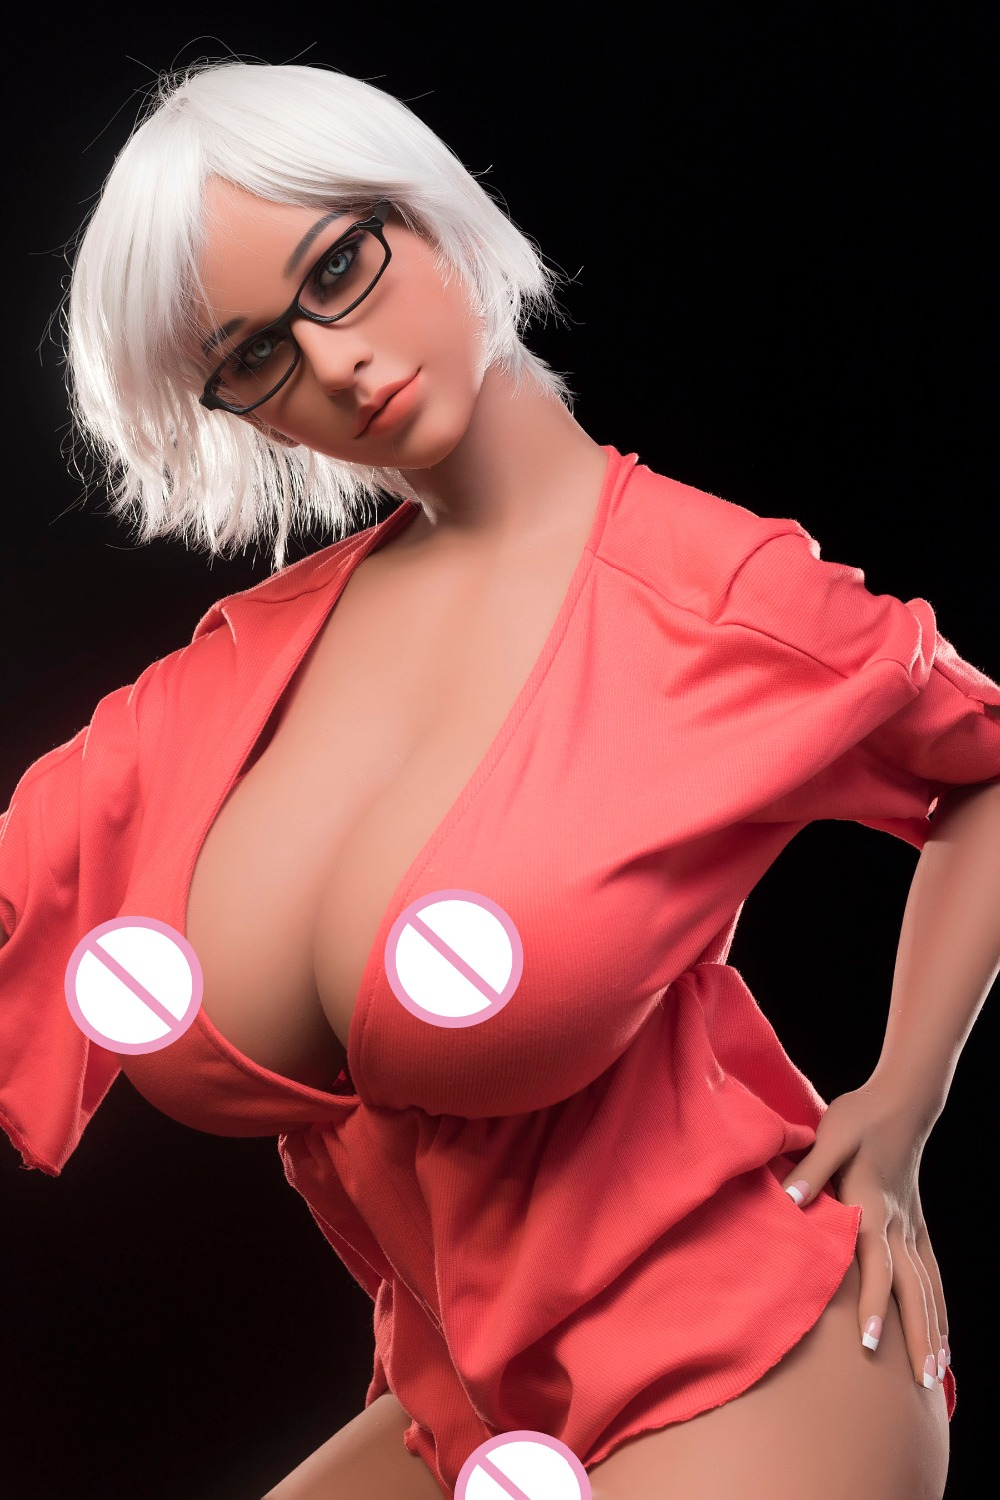 NEW Top quality <font><b>167cm</b></font> silicone real <font><b>sex</b></font> <font><b>doll</b></font> big breast, japanese real love <font><b>doll</b></font>, real adult <font><b>dolls</b></font>, sexy toys for man image